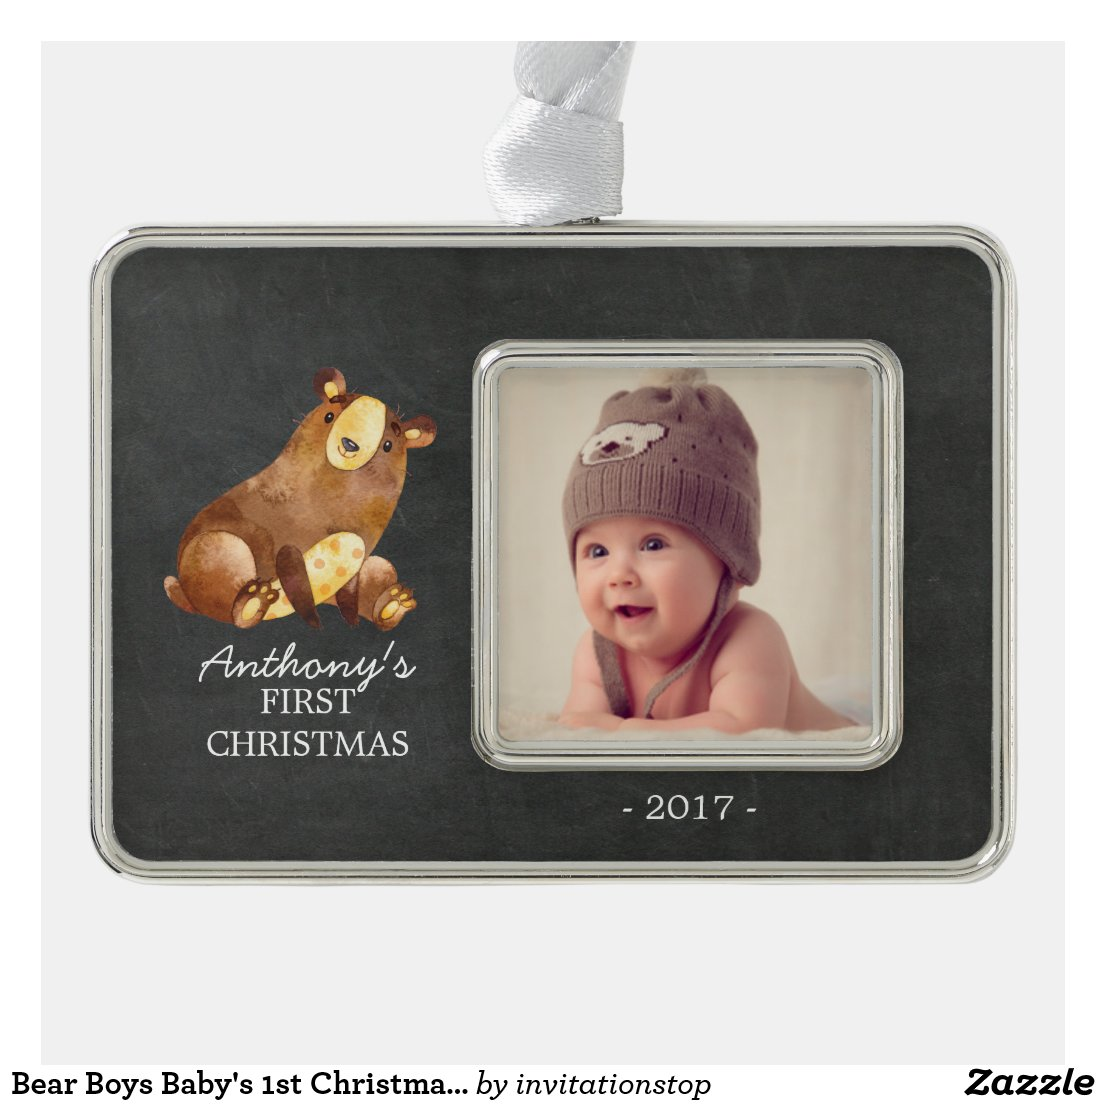 Bear Boys Baby's 1st Christmas Photo Ornament